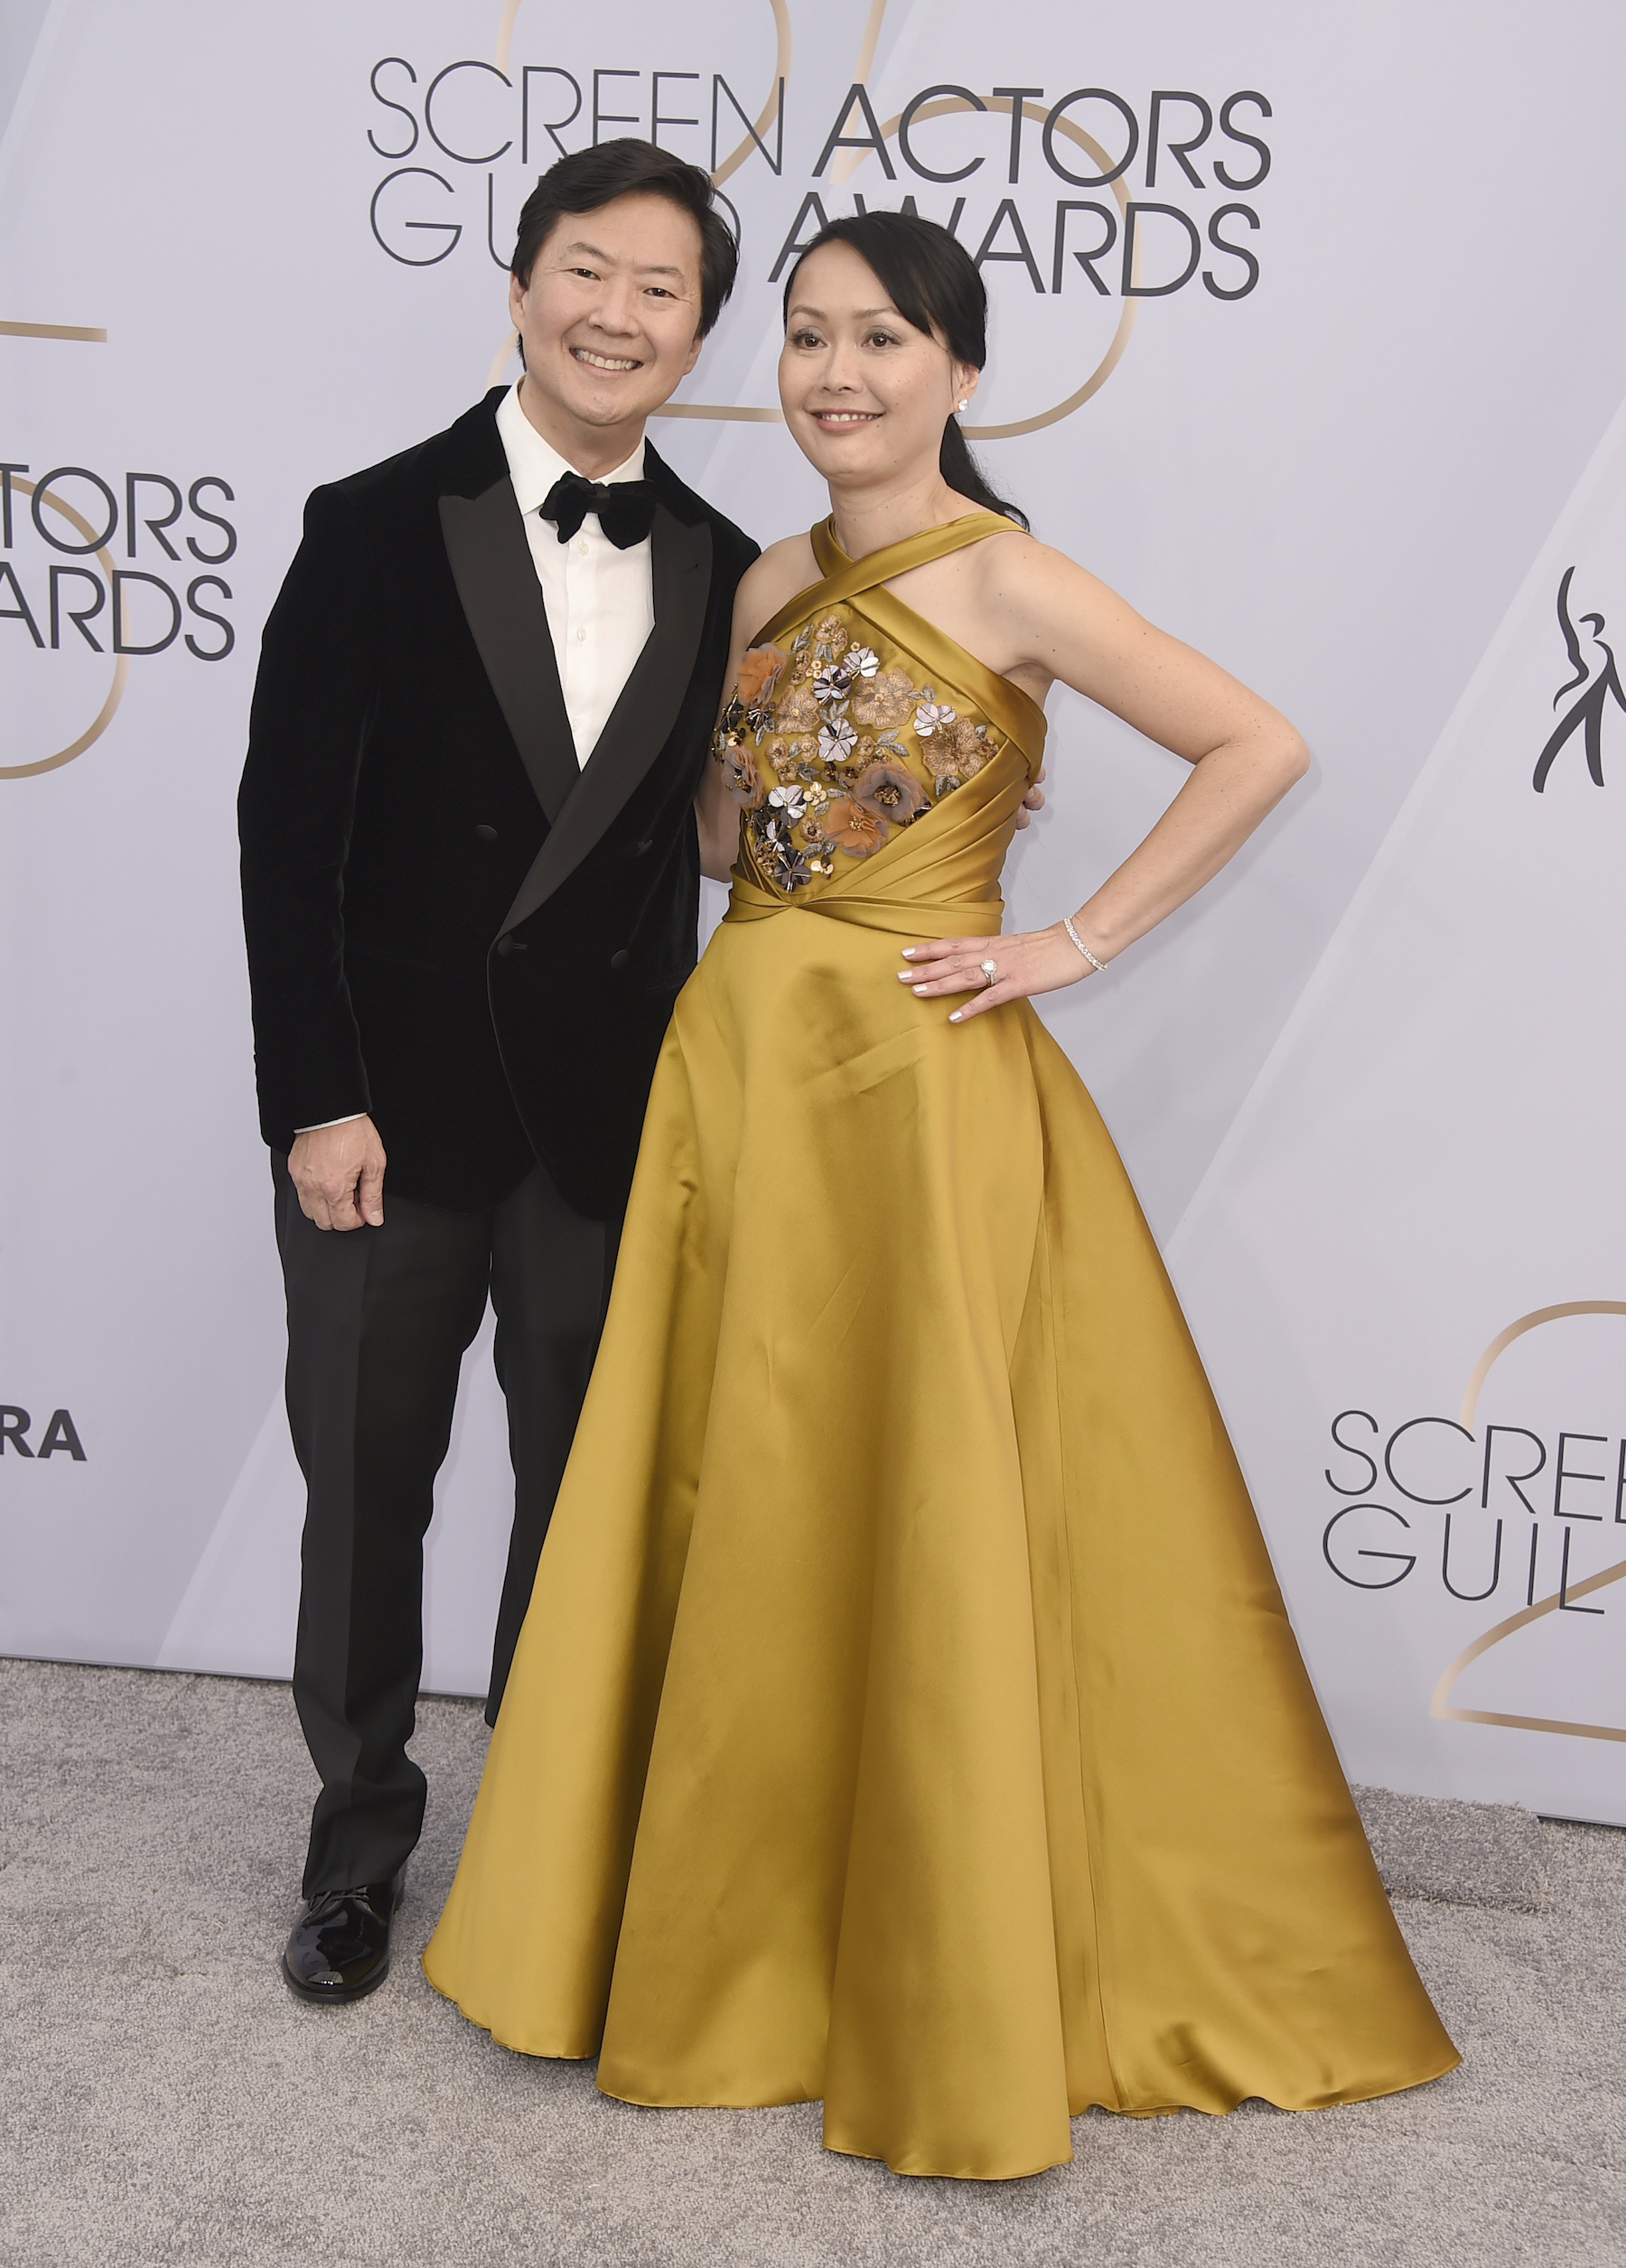 <div class='meta'><div class='origin-logo' data-origin='AP'></div><span class='caption-text' data-credit='Jordan Strauss/Invision/AP'>Ken Jeong, left, and Tran Jeong arrive at the 25th annual Screen Actors Guild Awards at the Shrine Auditorium & Expo Hall on Sunday, Jan. 27, 2019, in Los Angeles.</span></div>